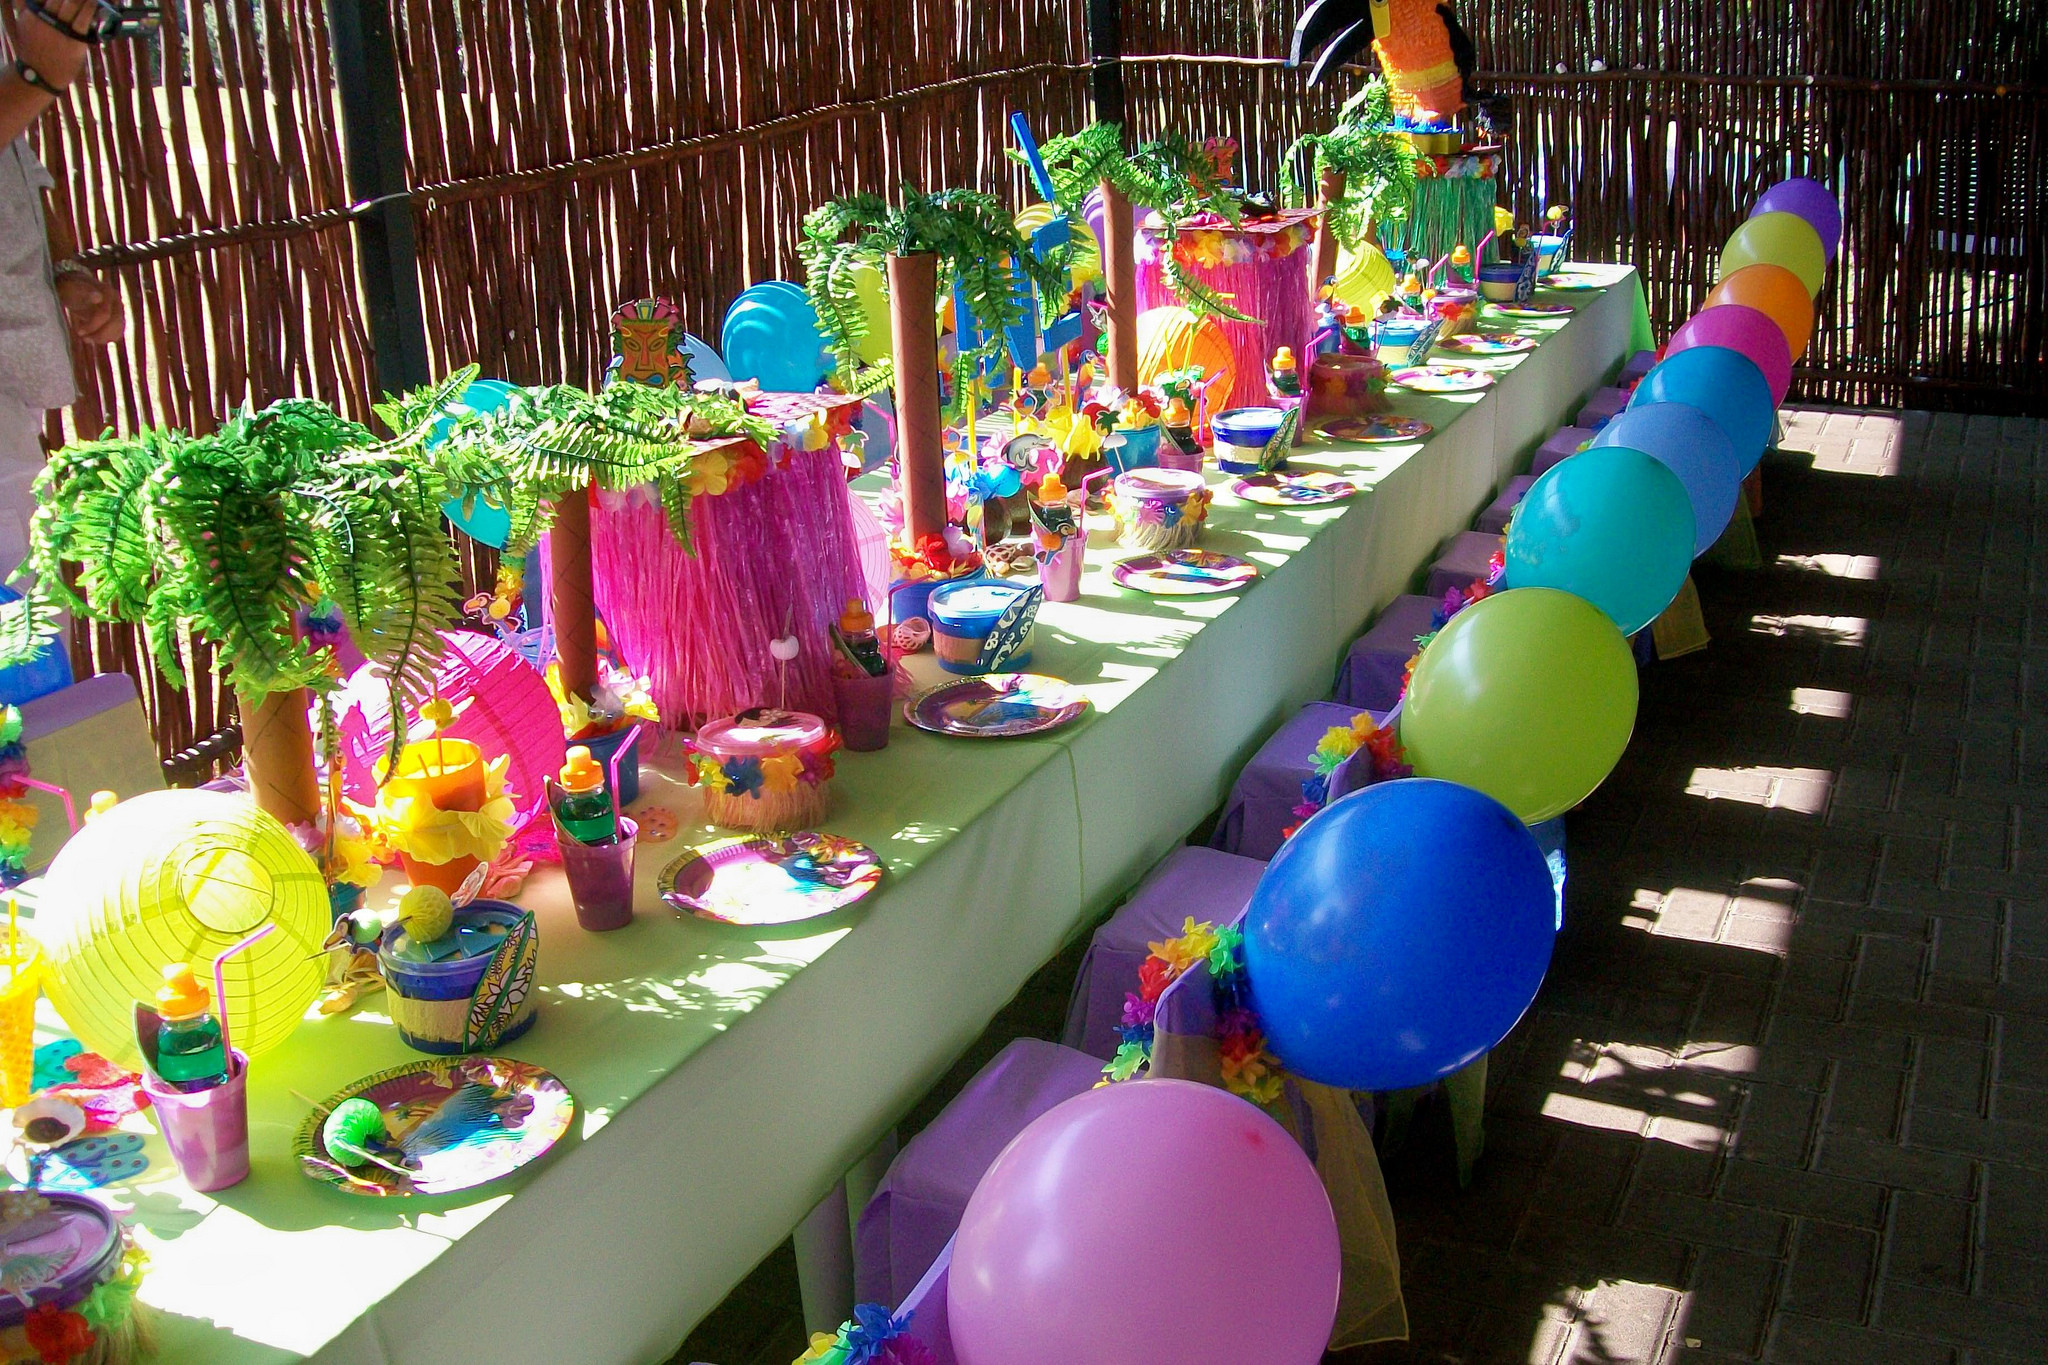 Summer Company Party Ideas  Five Fun Summer Party Themes Agenda Daily Business and